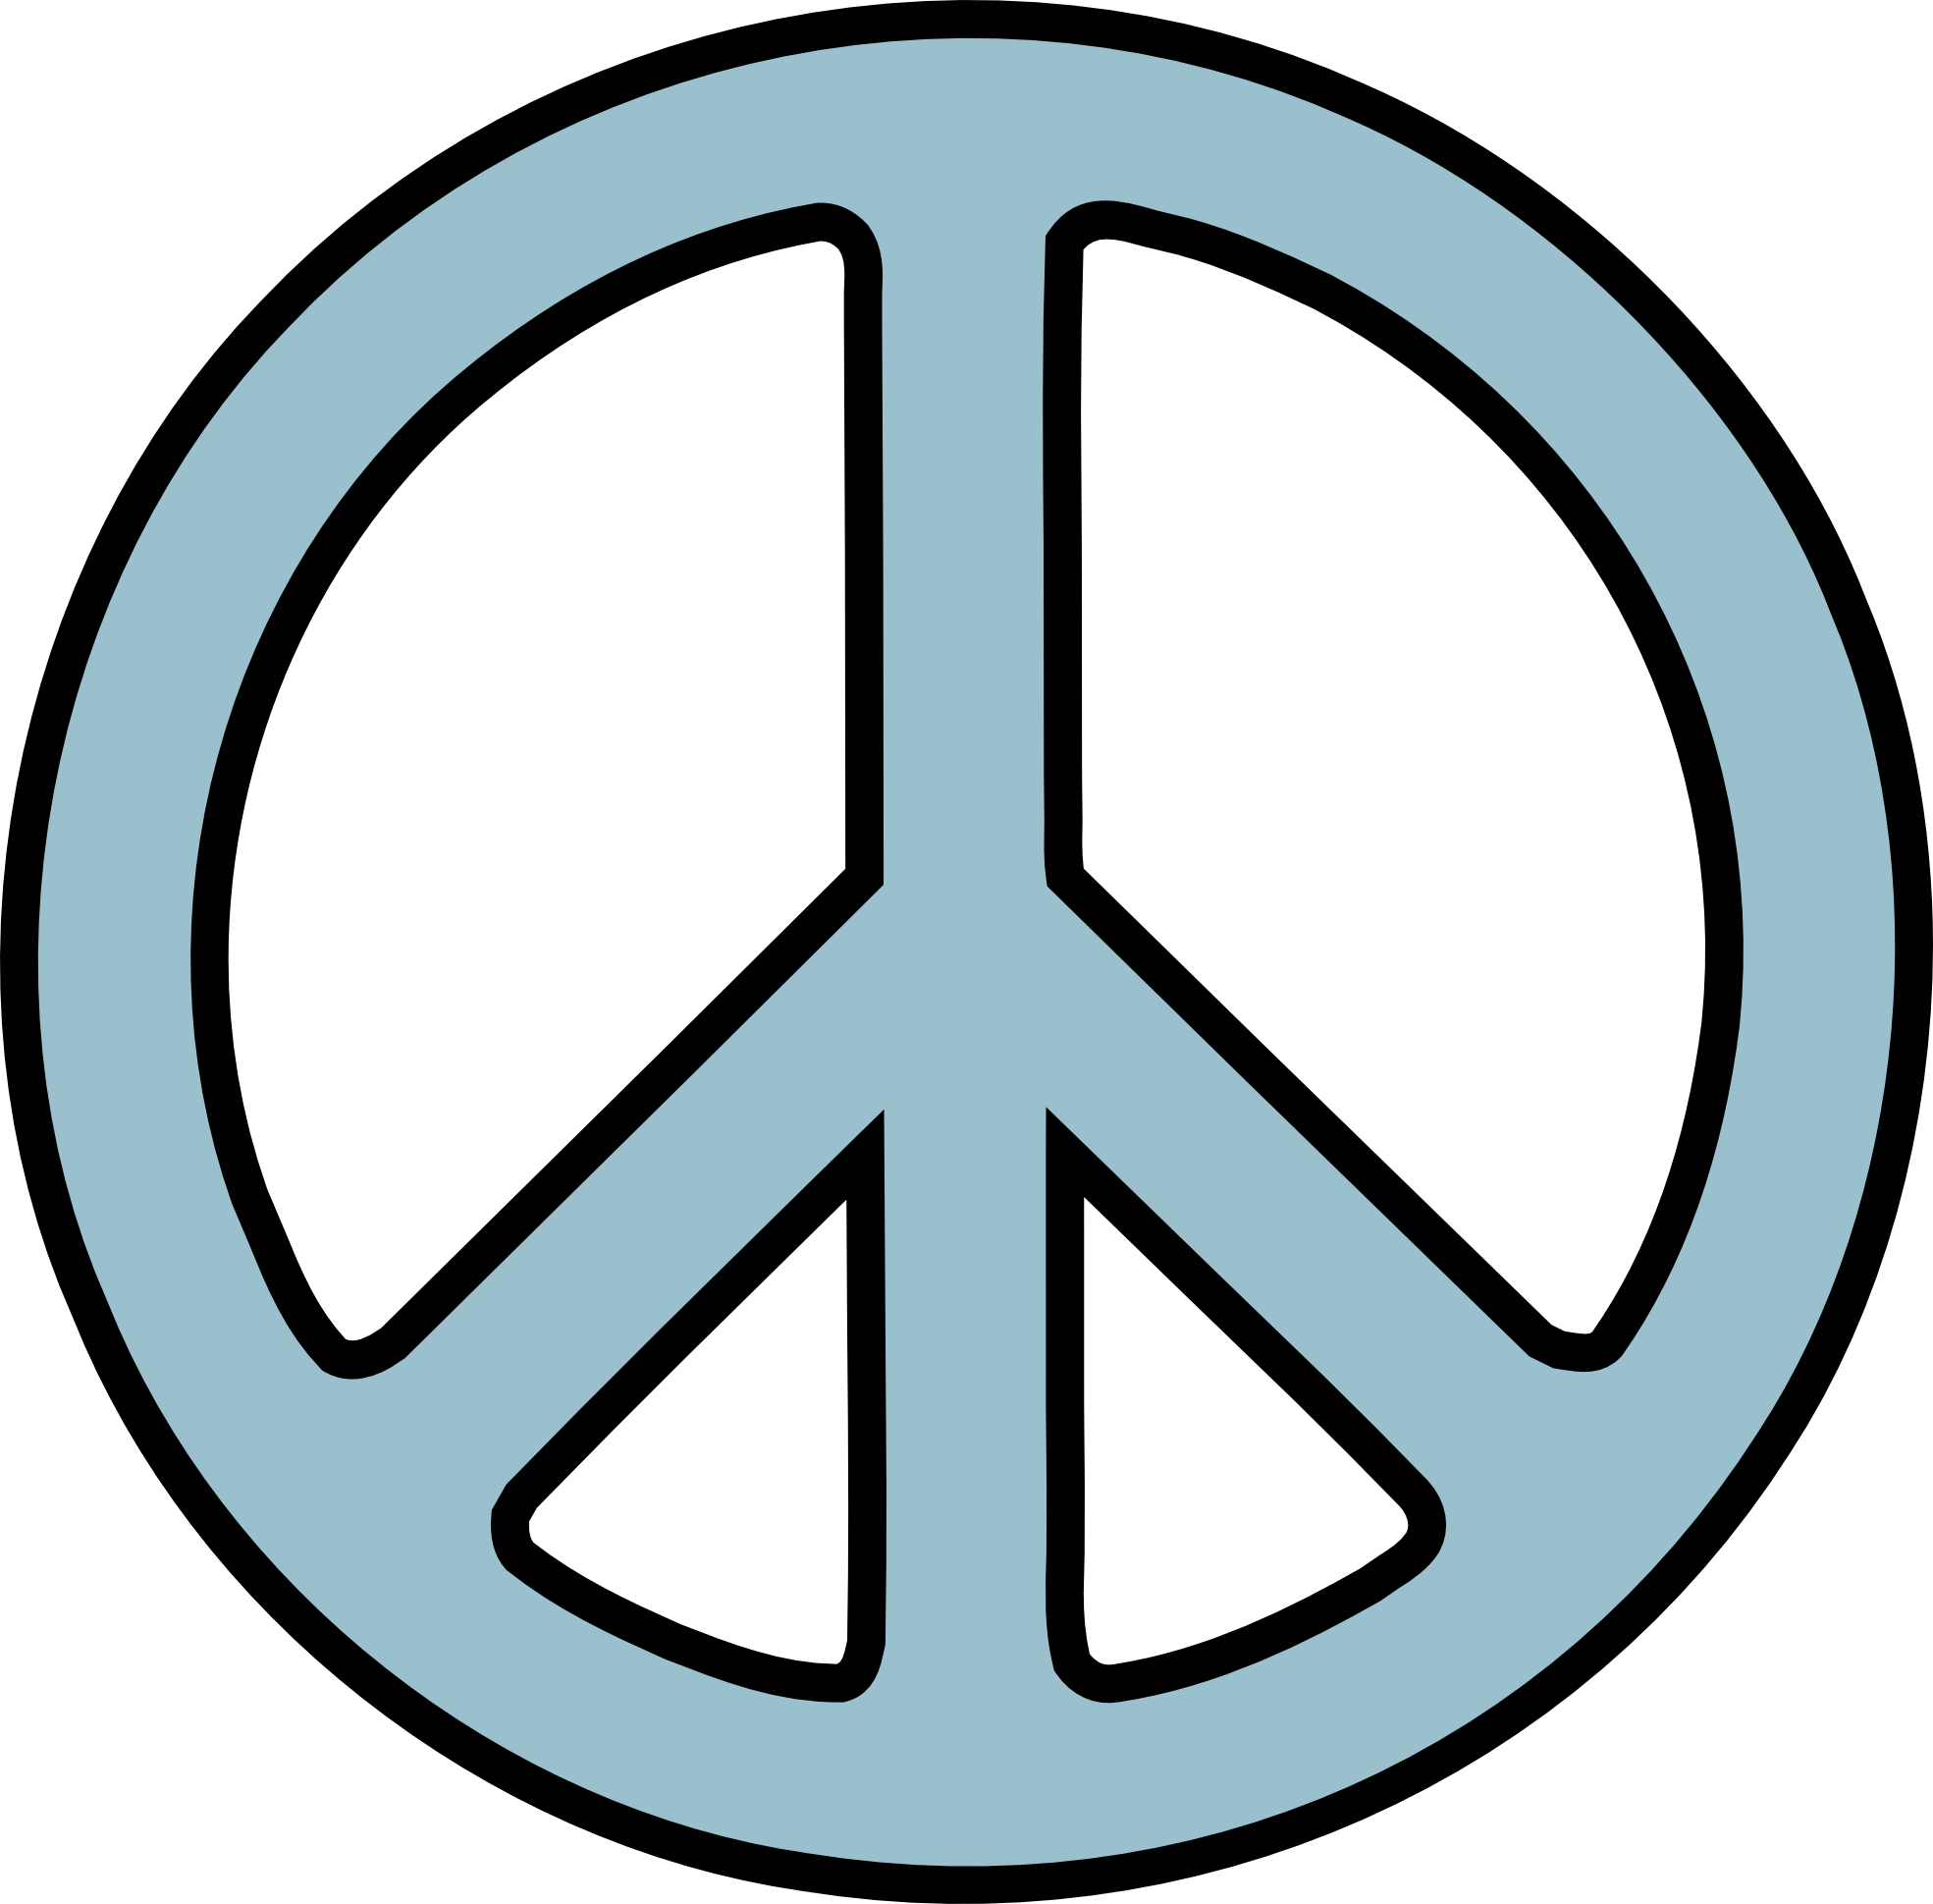 Free Peace Symbol Clipart, Download Free Clip Art, Free Clip.